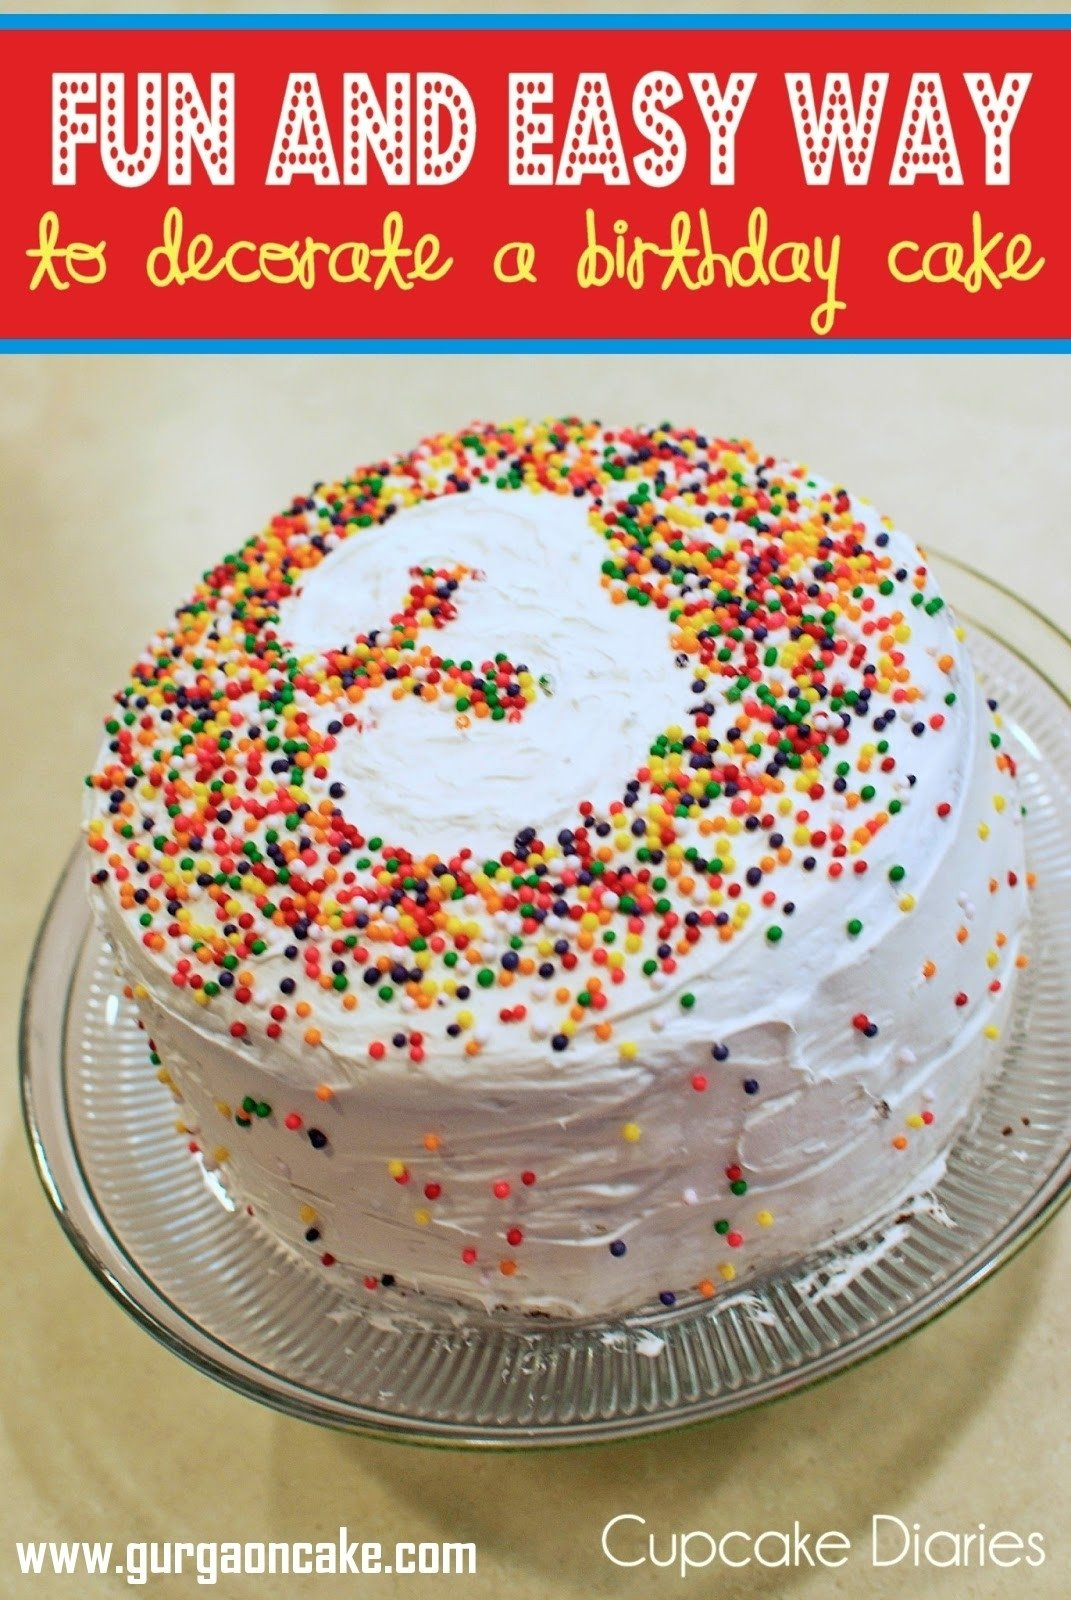 10 Most Recommended Easy Cake Decorating Ideas For Kids kid birthday cake cool easy childrens cake decorating ideas 2021